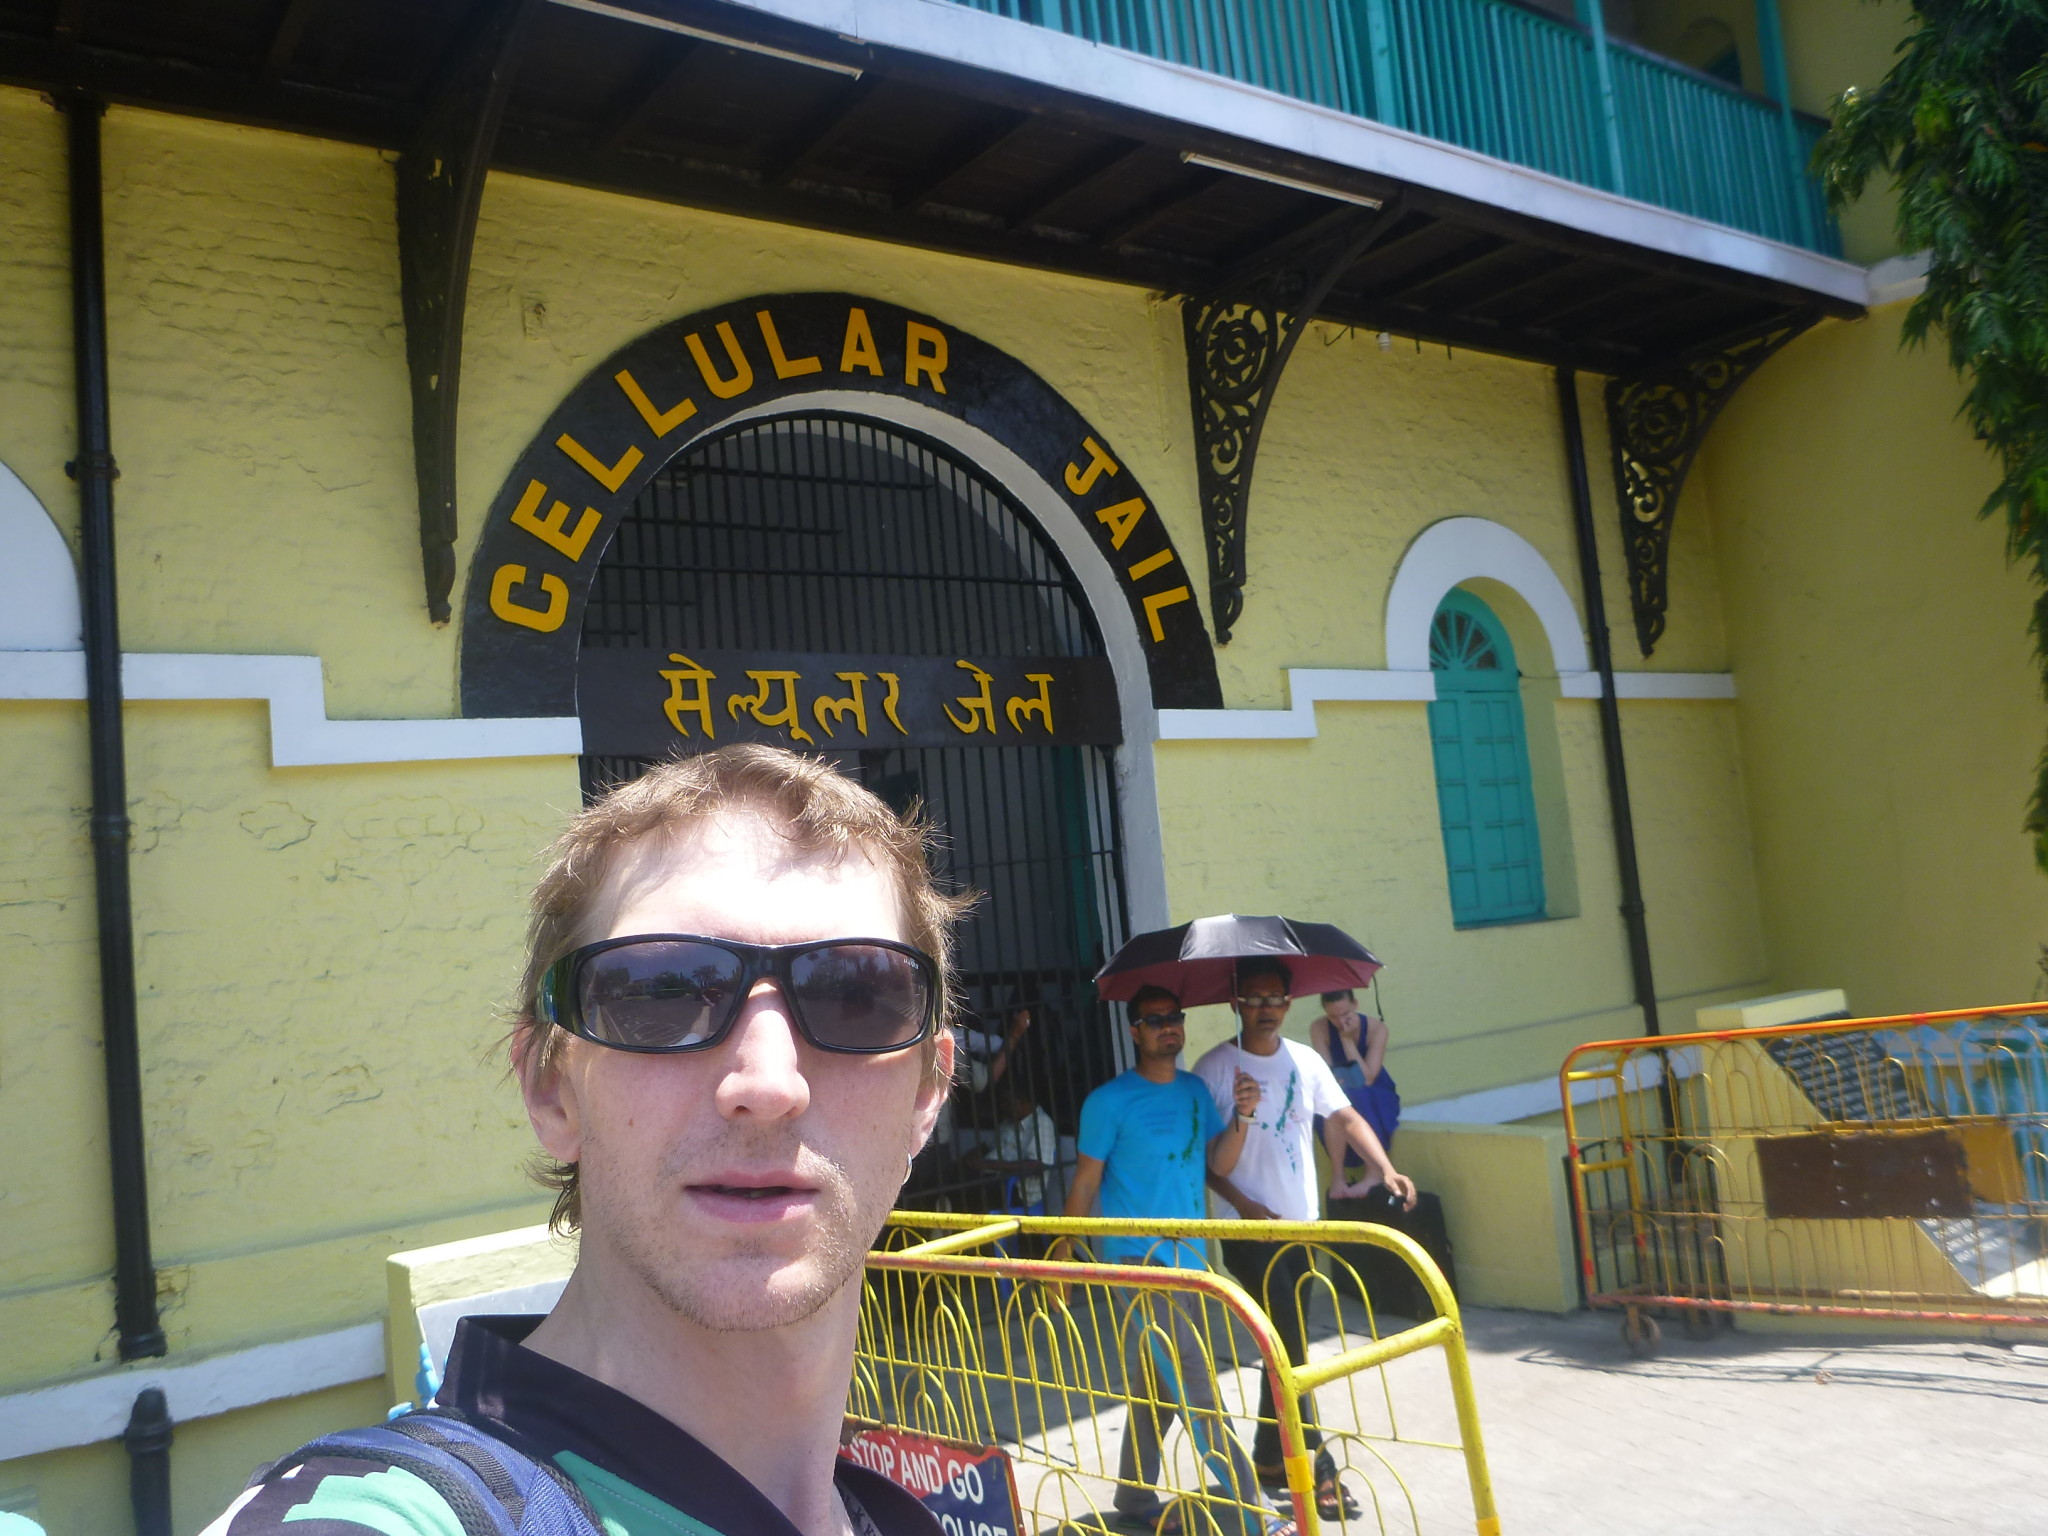 Backpacking in Andaman Islands, India: Top 5 Sights in Port Blair, the Capital City